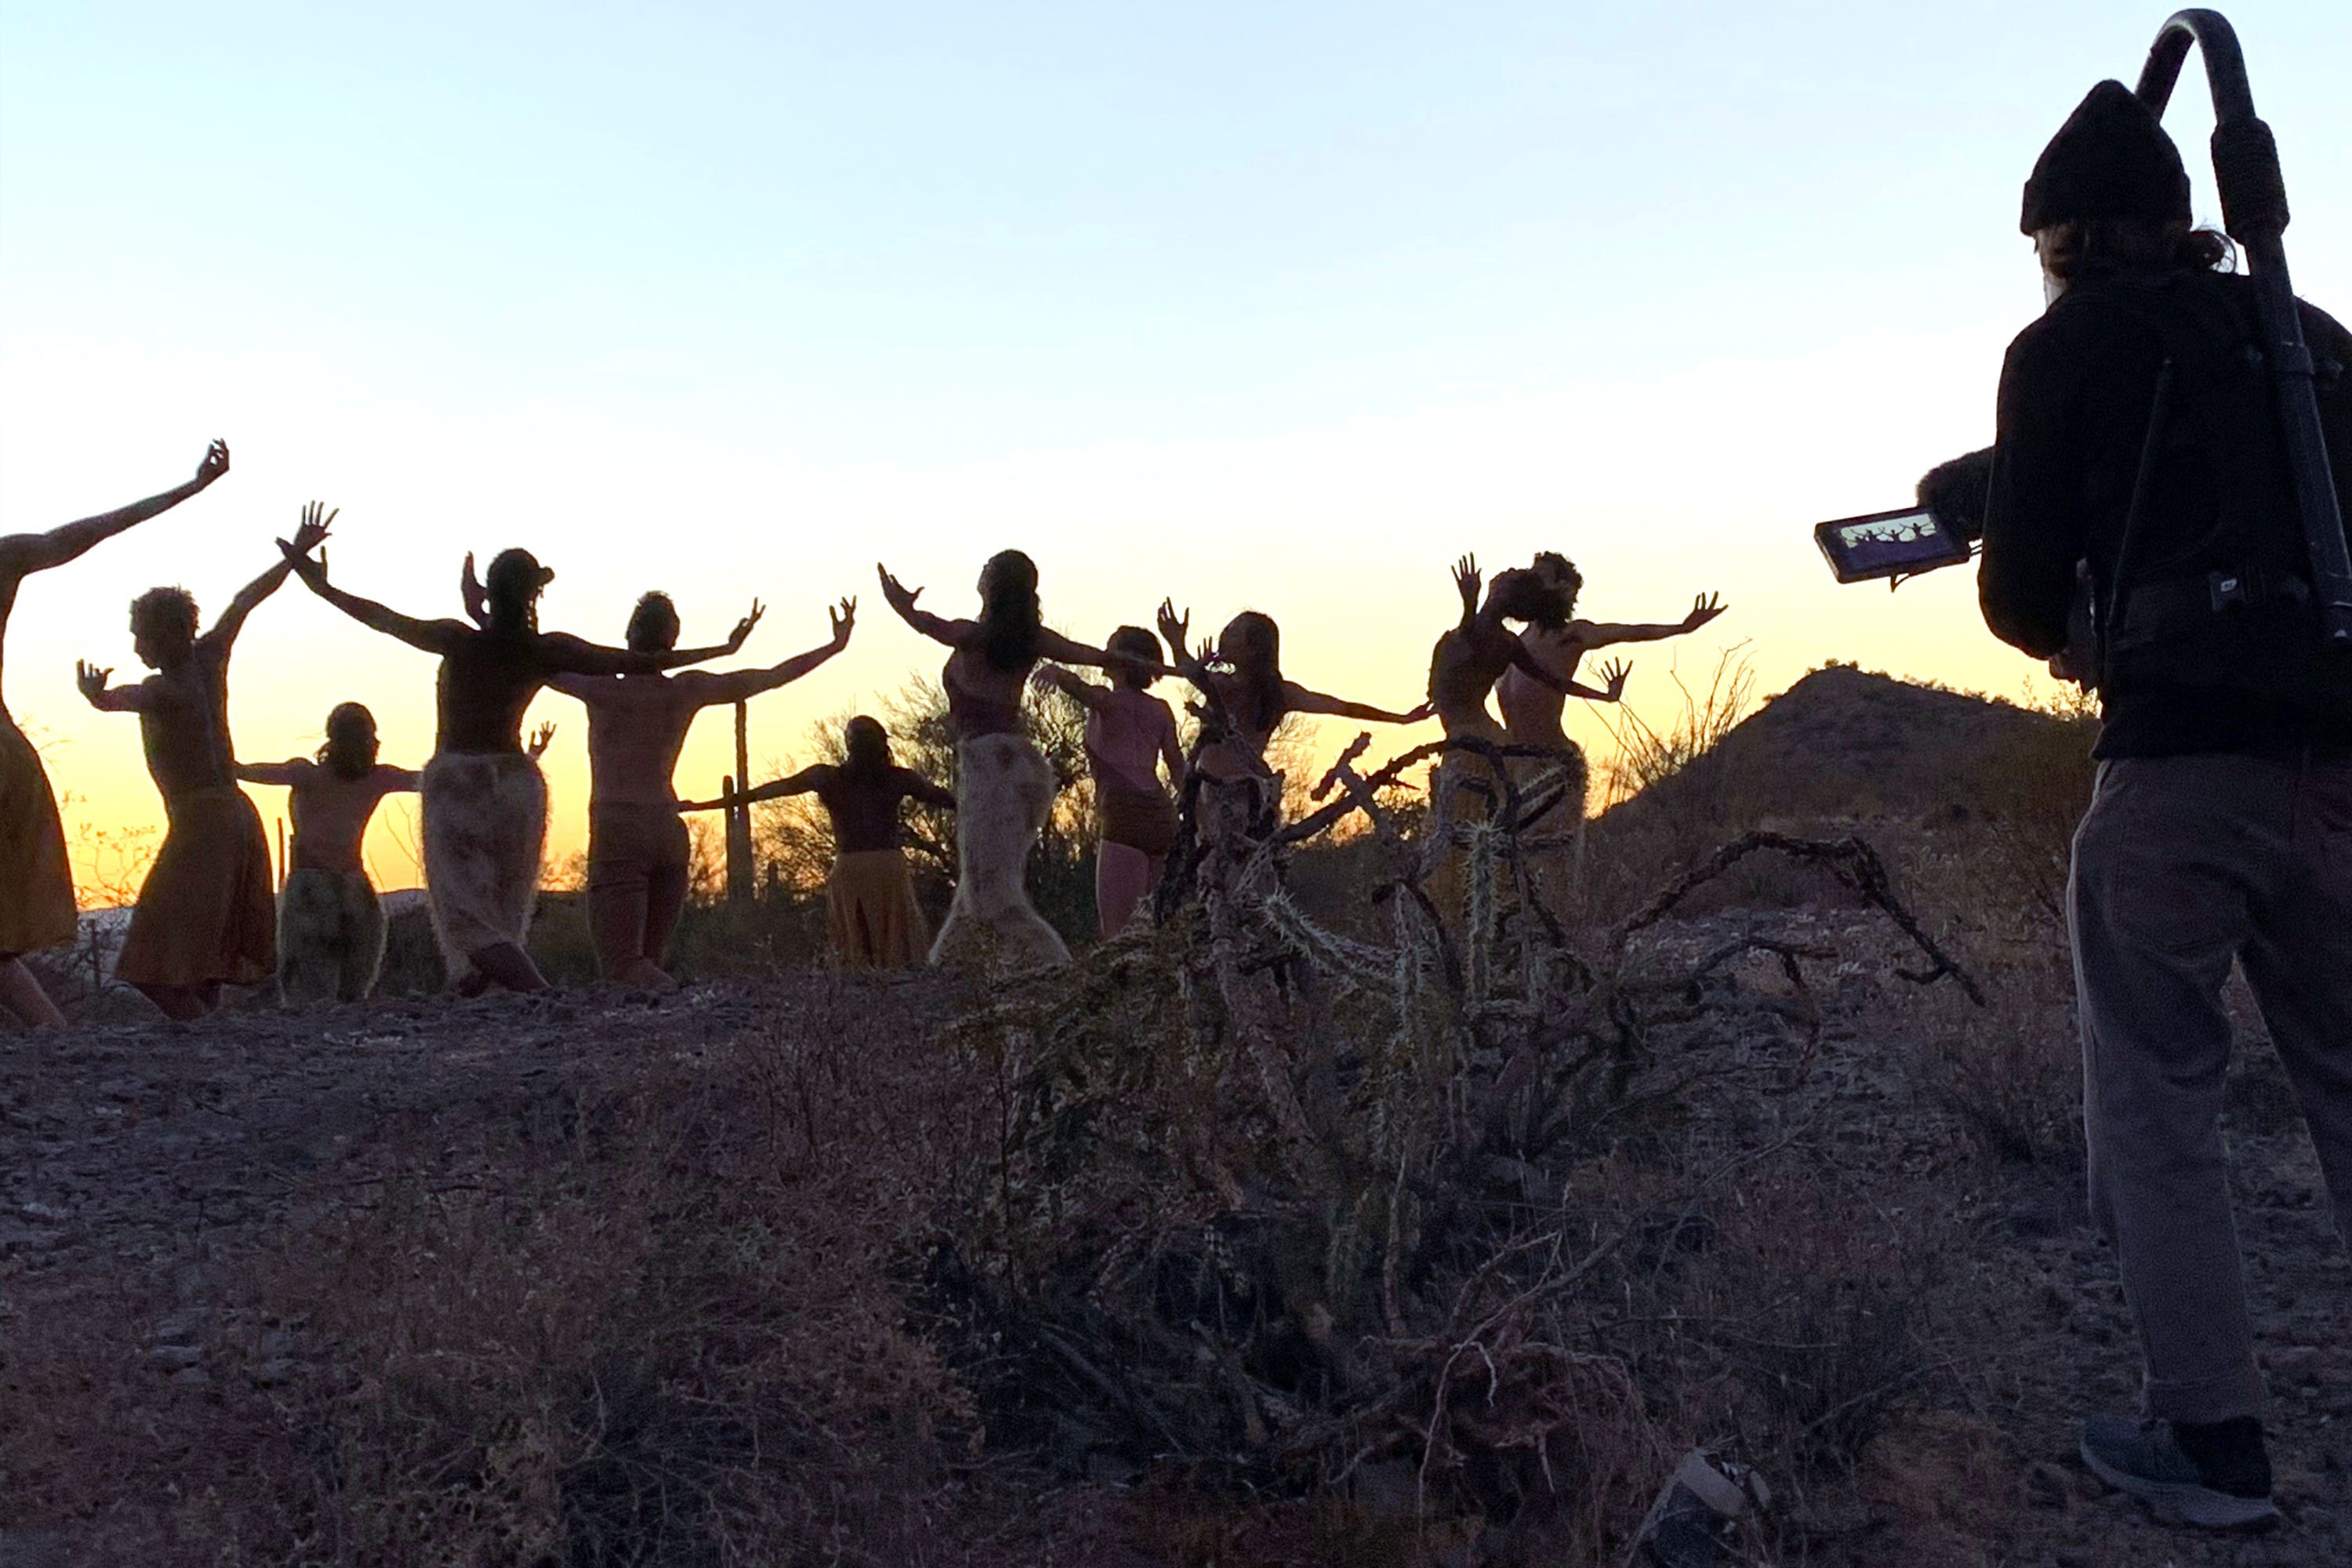 dancers outside in desert with videographer